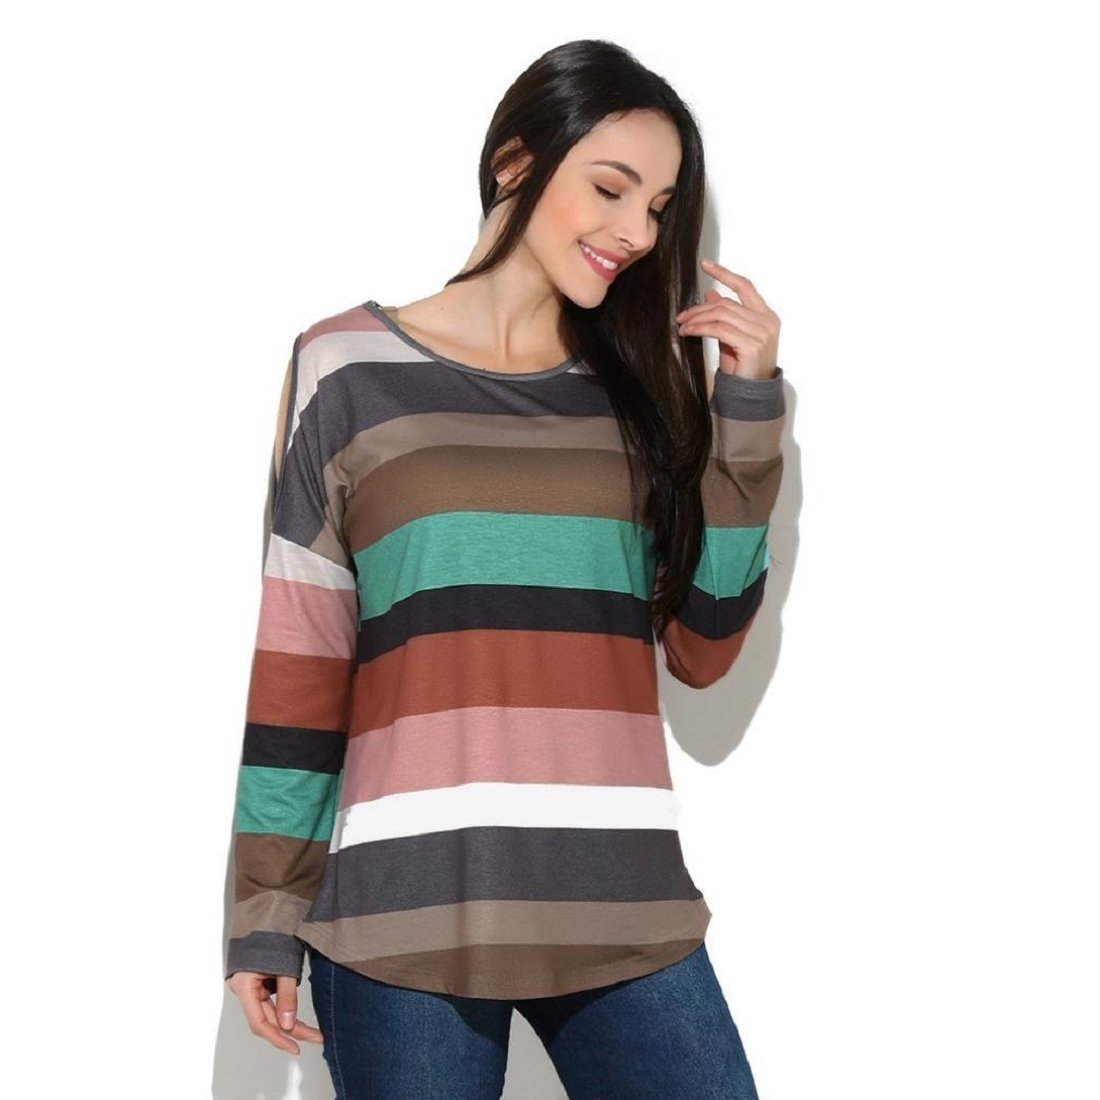 0e9b5846784 GONKOMA Women s Long Sleeve Tops Summer Strapless Rainbow Striped Blouse  Loose Casual T Shirt Pullovers at Amazon Women s Clothing store